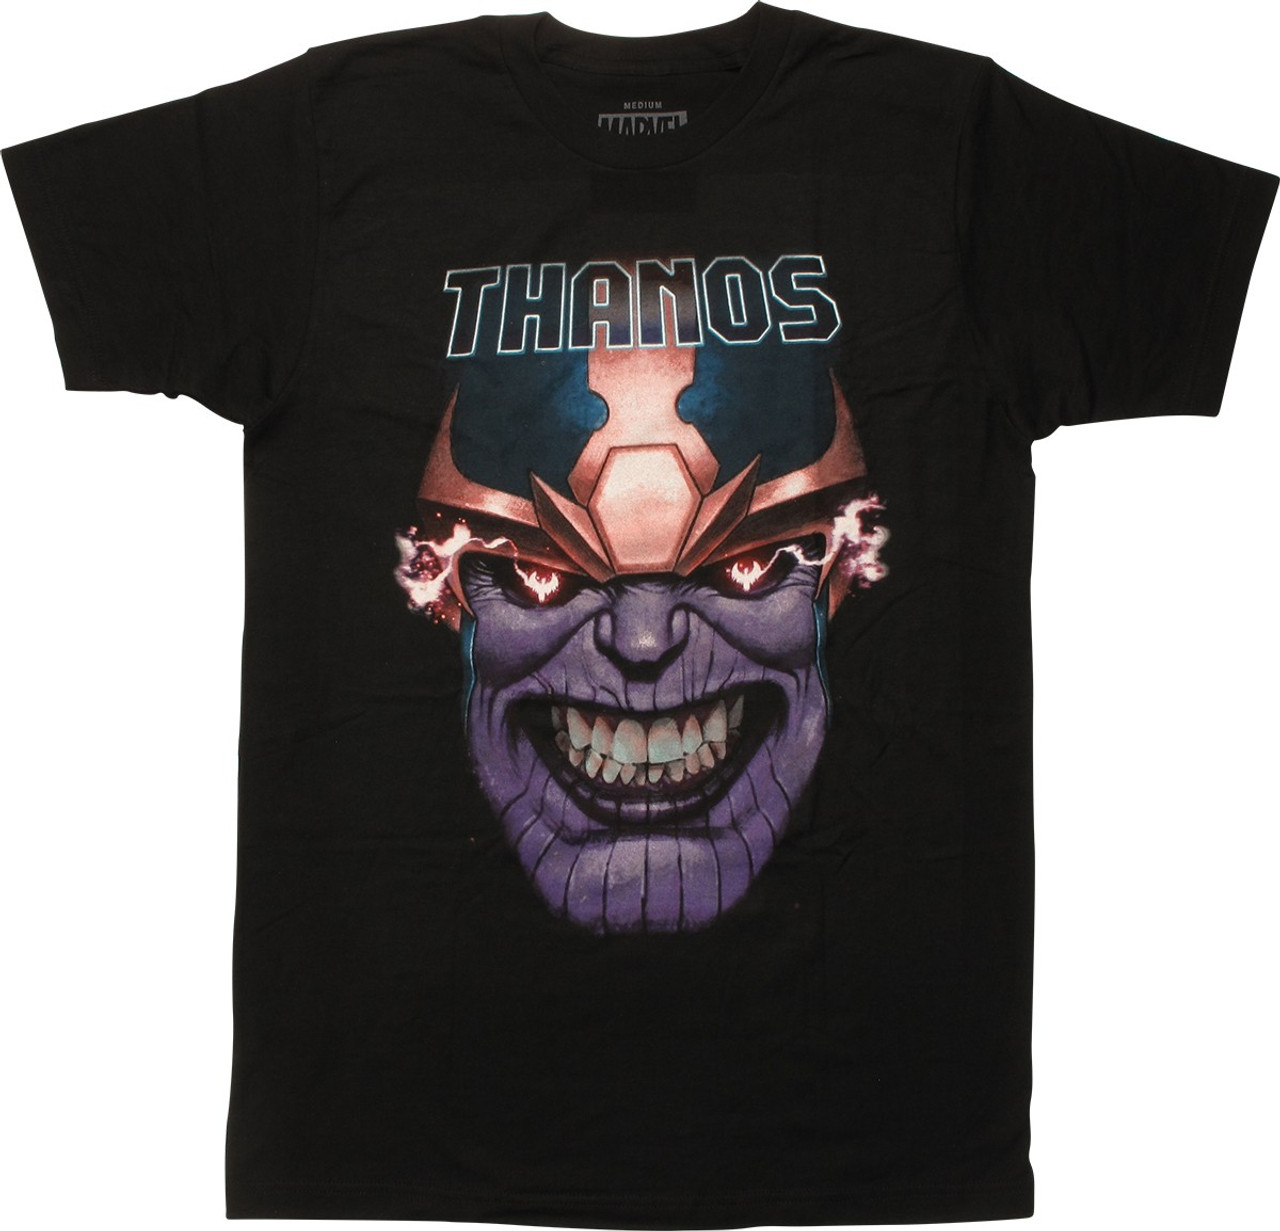 2019 real cheaper sale select for newest Avengers Thanos T-Shirt